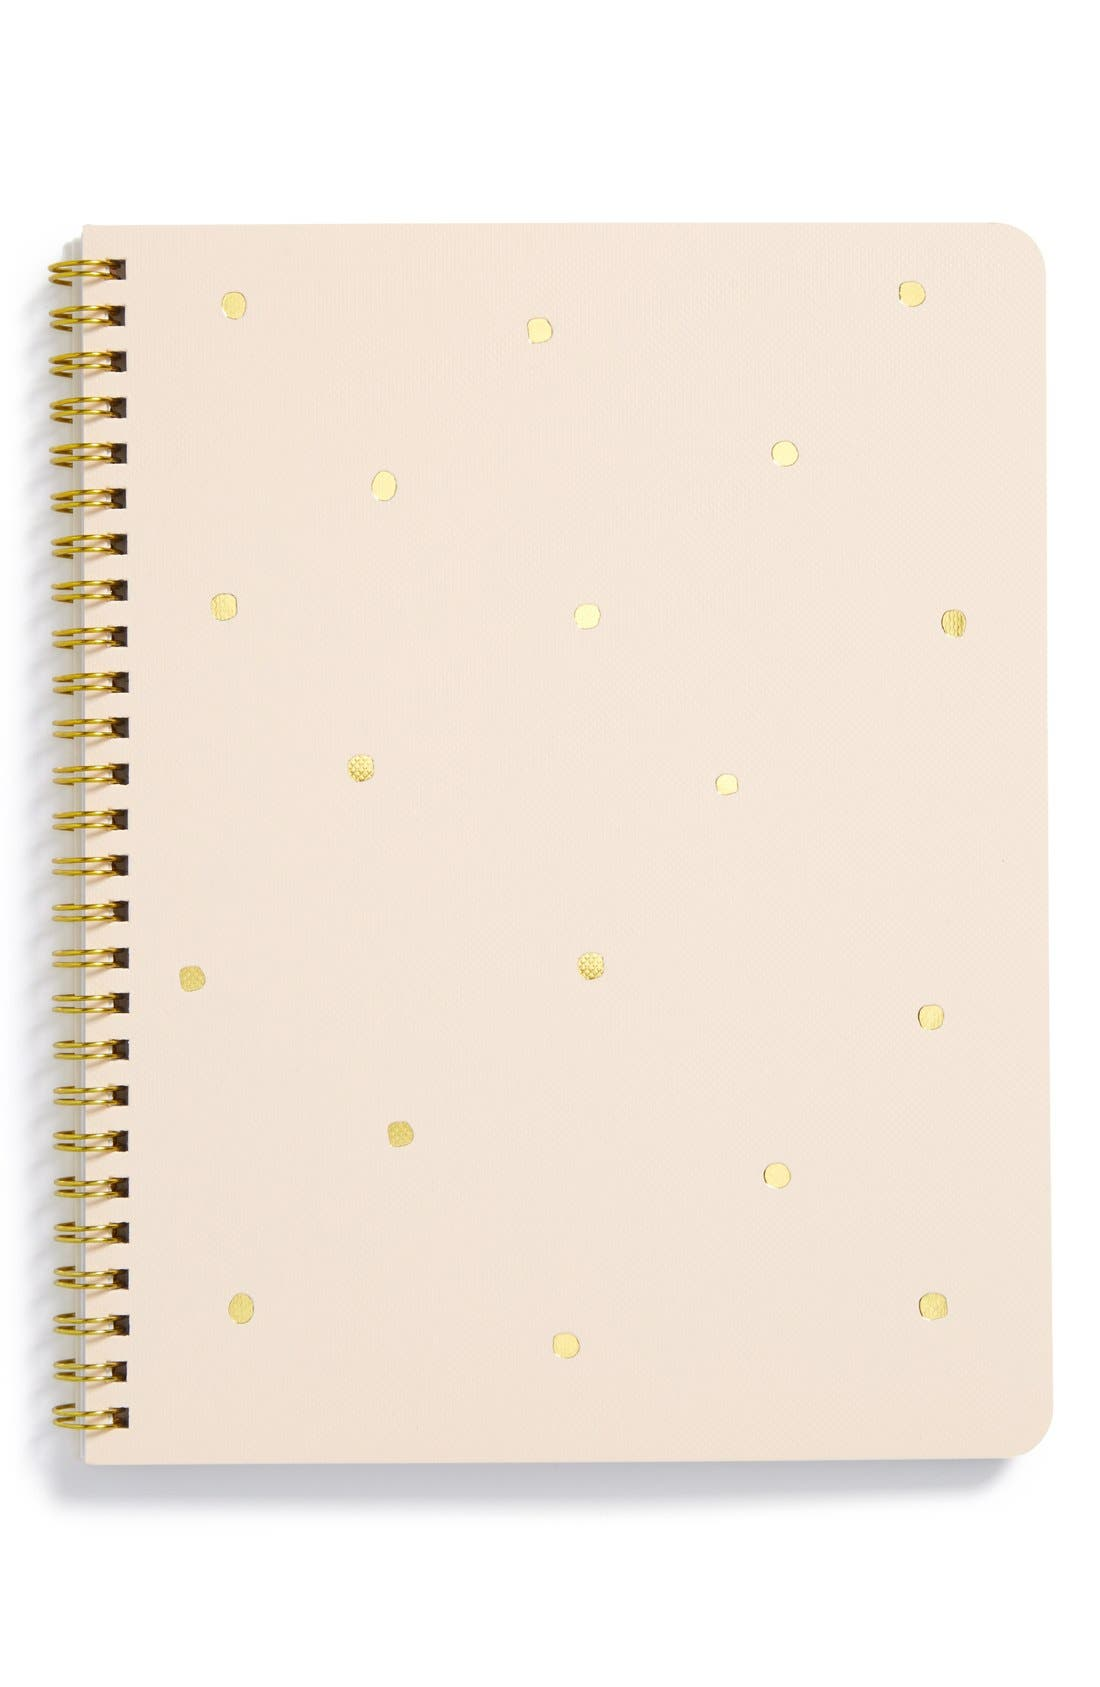 Alternate Image 1 Selected - sugar paper 'Small Polka Dot' Spiral Notebook